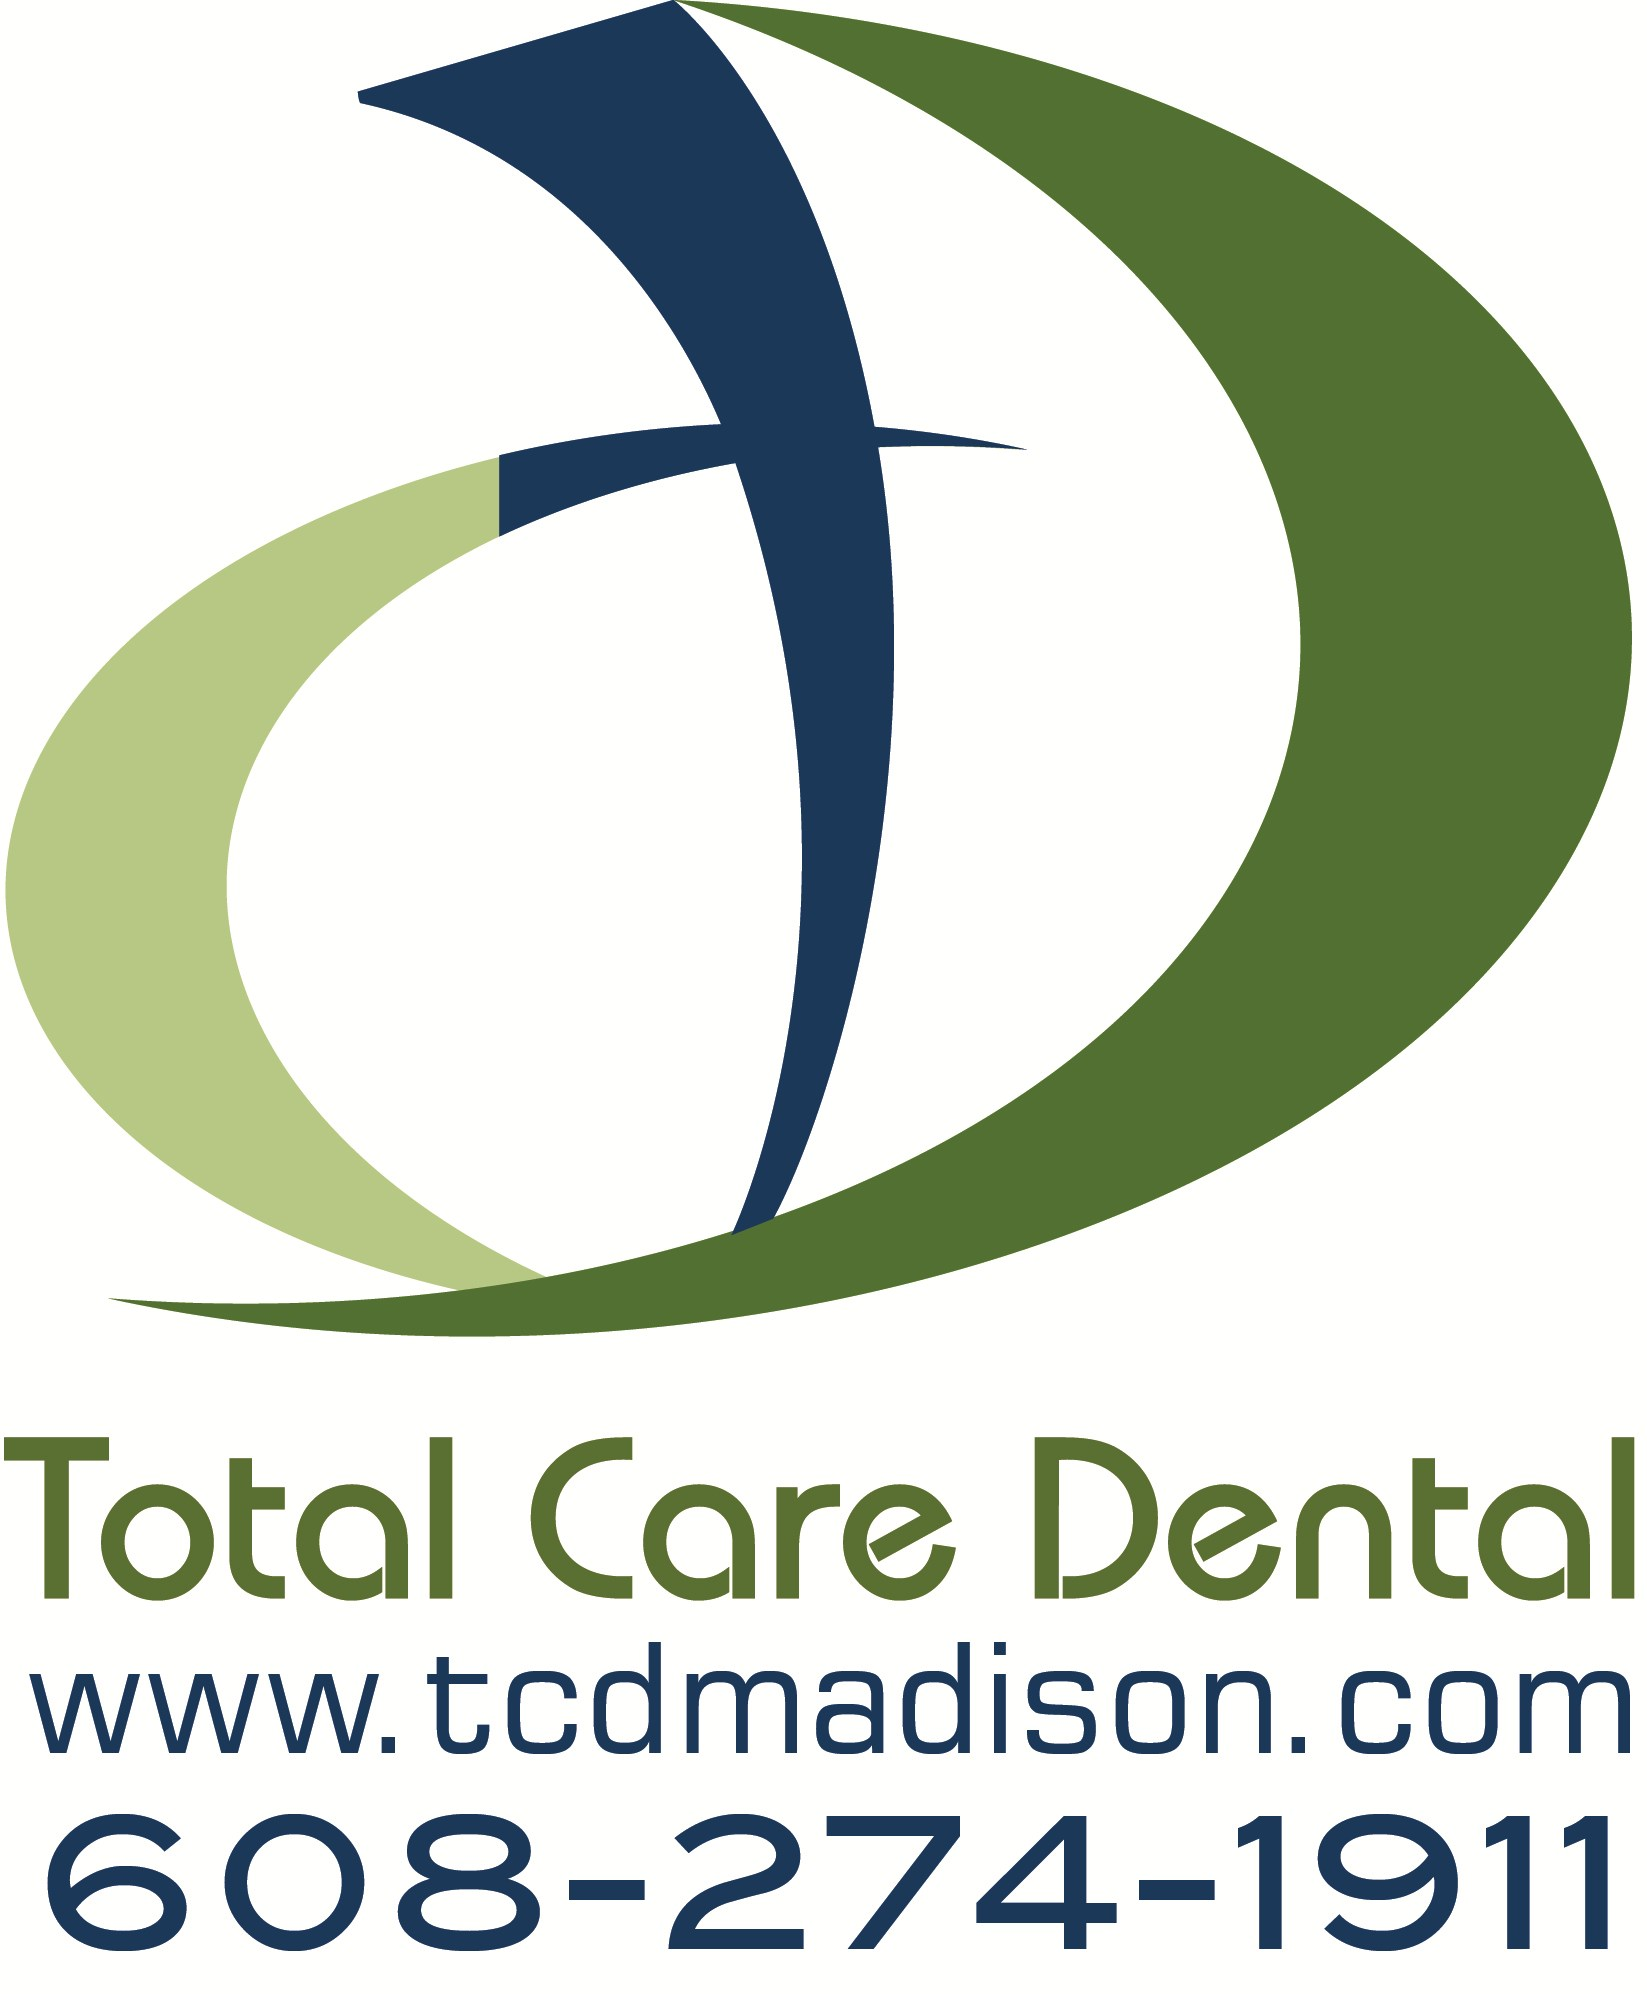 Total Care Dental Reviews Madison Wi Angie S List